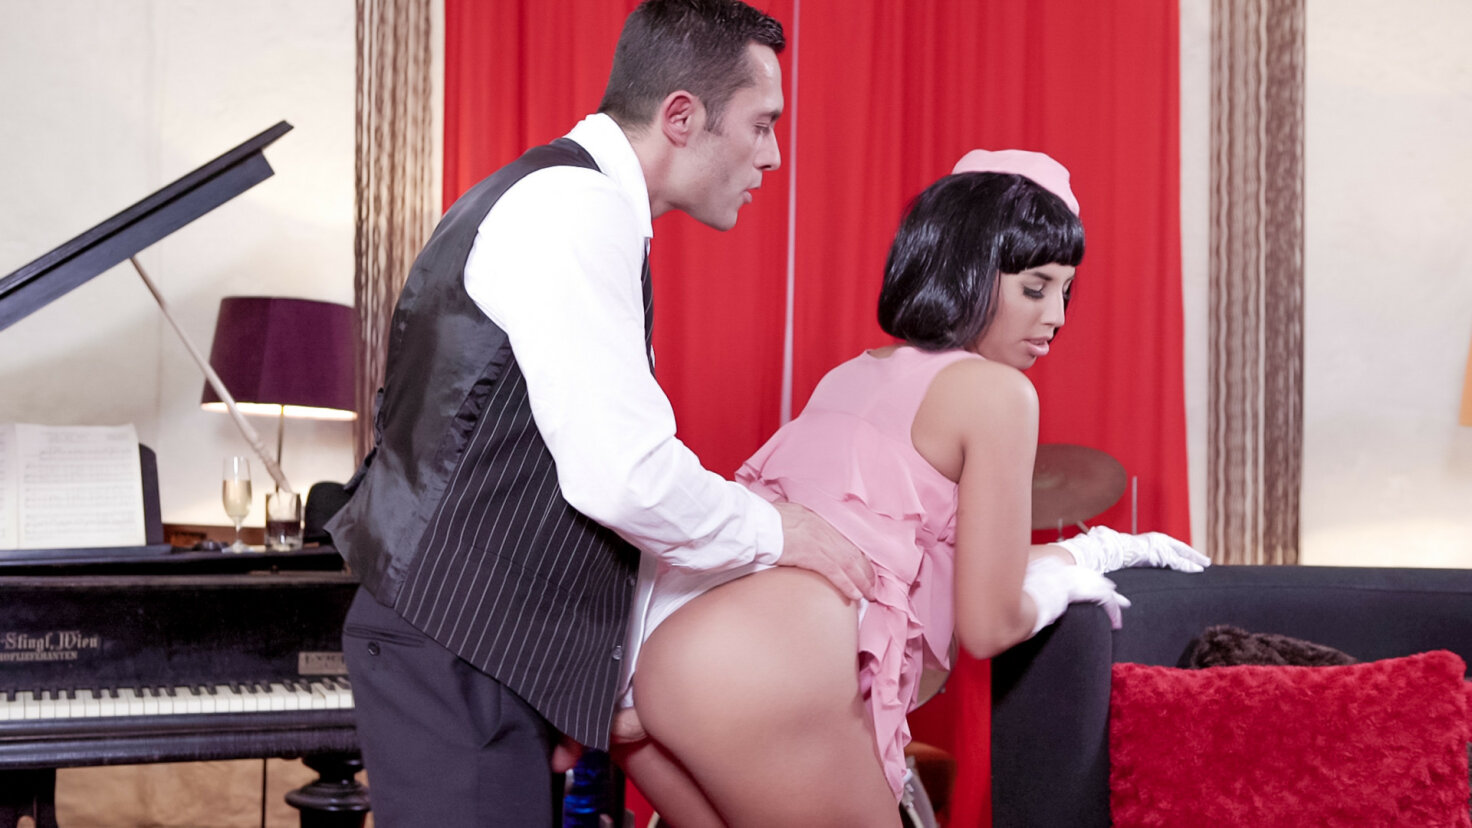 Seductive Hungarian pinup babe Jenette eats cum in hot fuck with musician